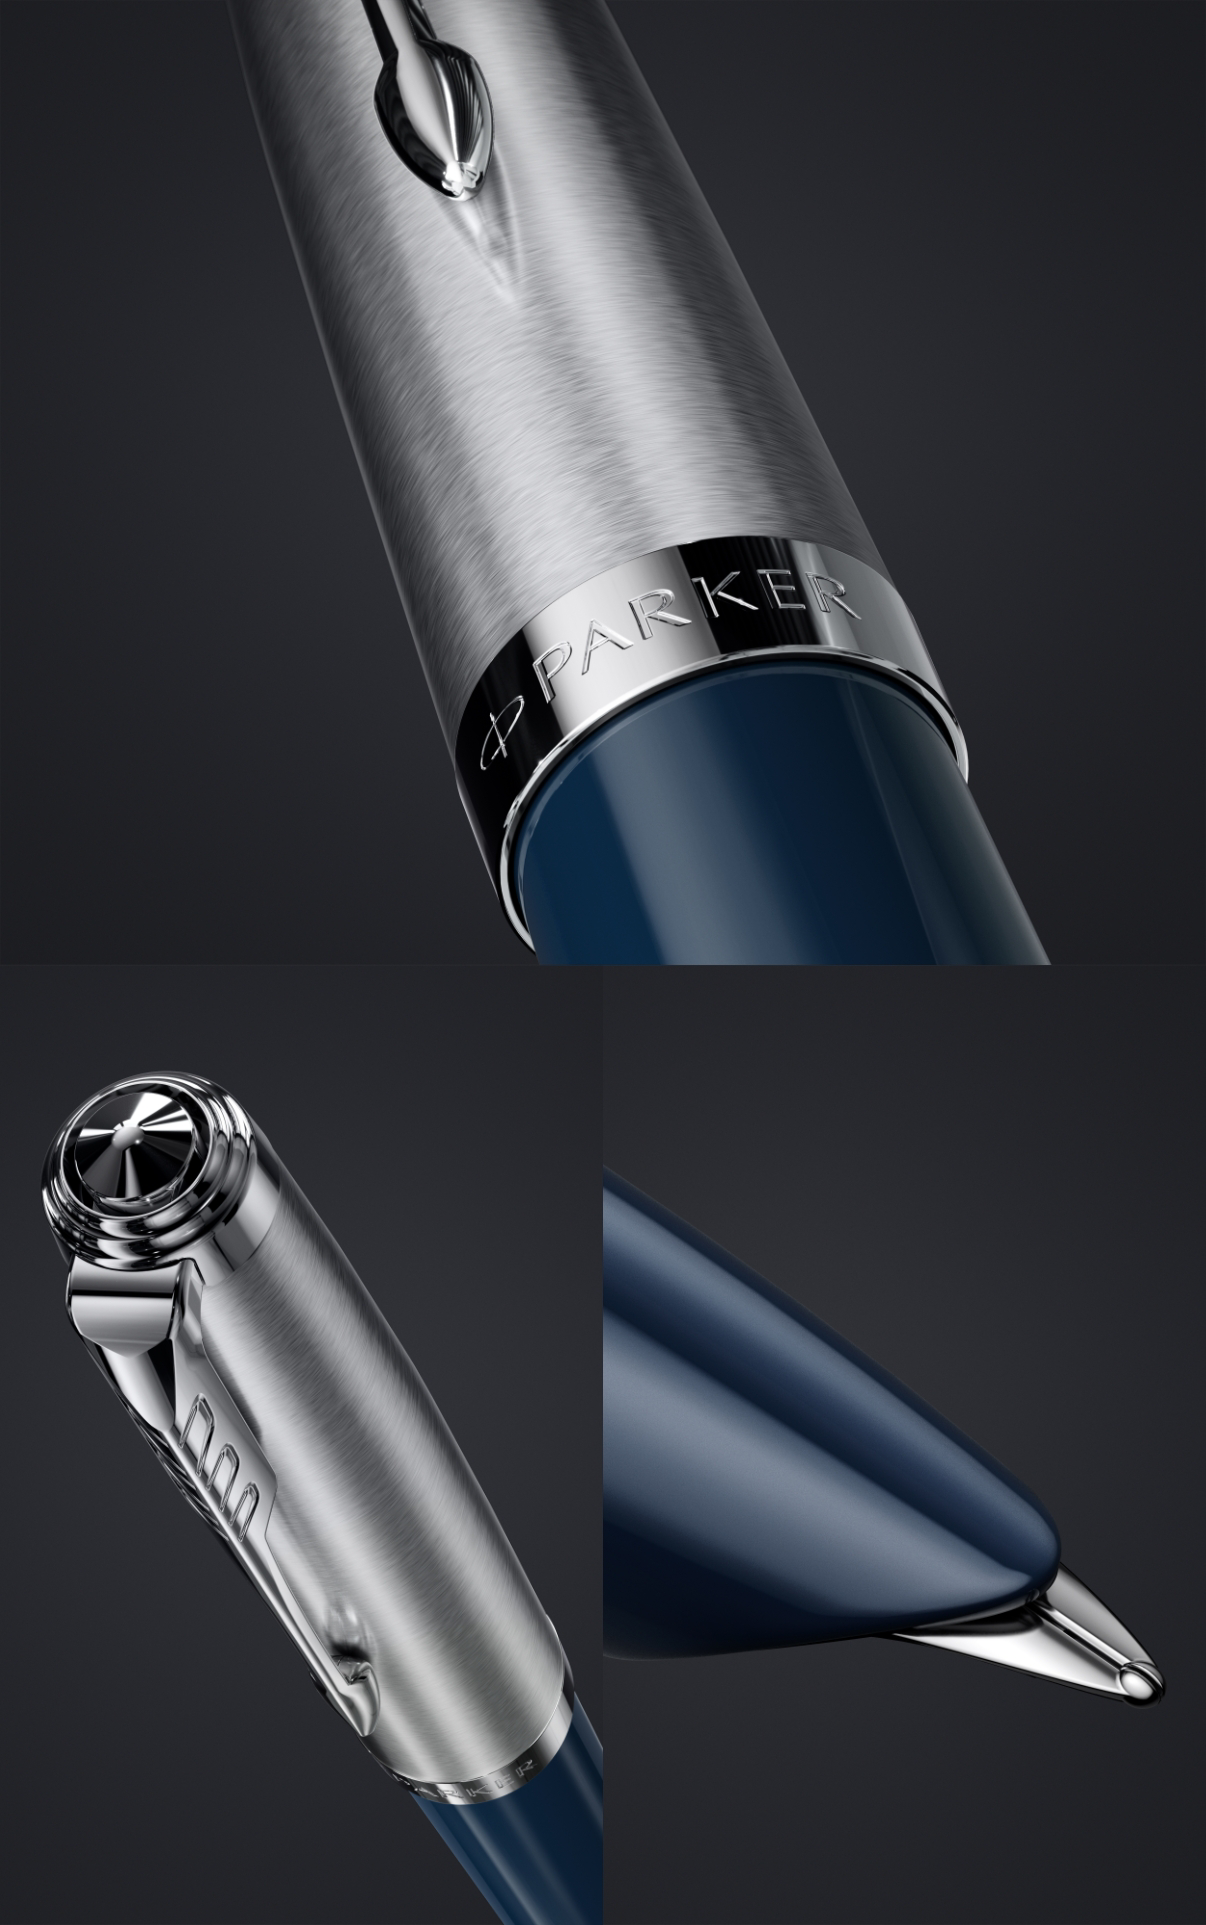 Midnight Blue: The iconic hooded nib, stainless-steel, the barrel cap of Parker 51